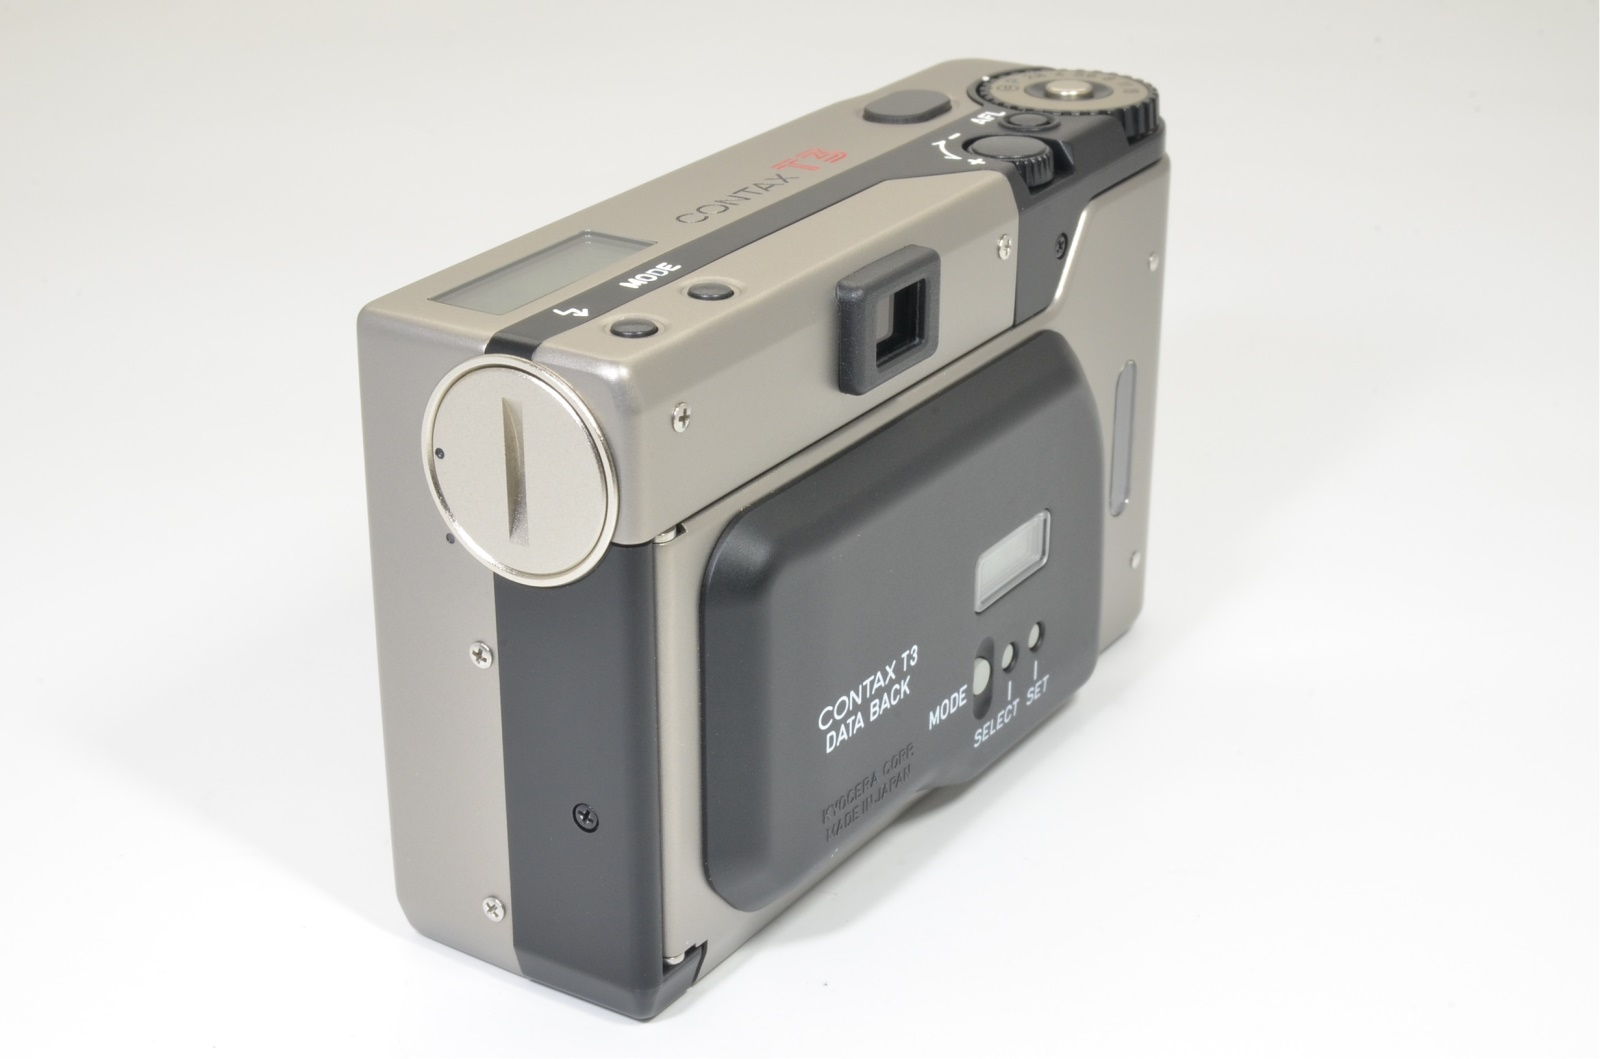 contax t3 titanium silver data back double teeth shooting tested